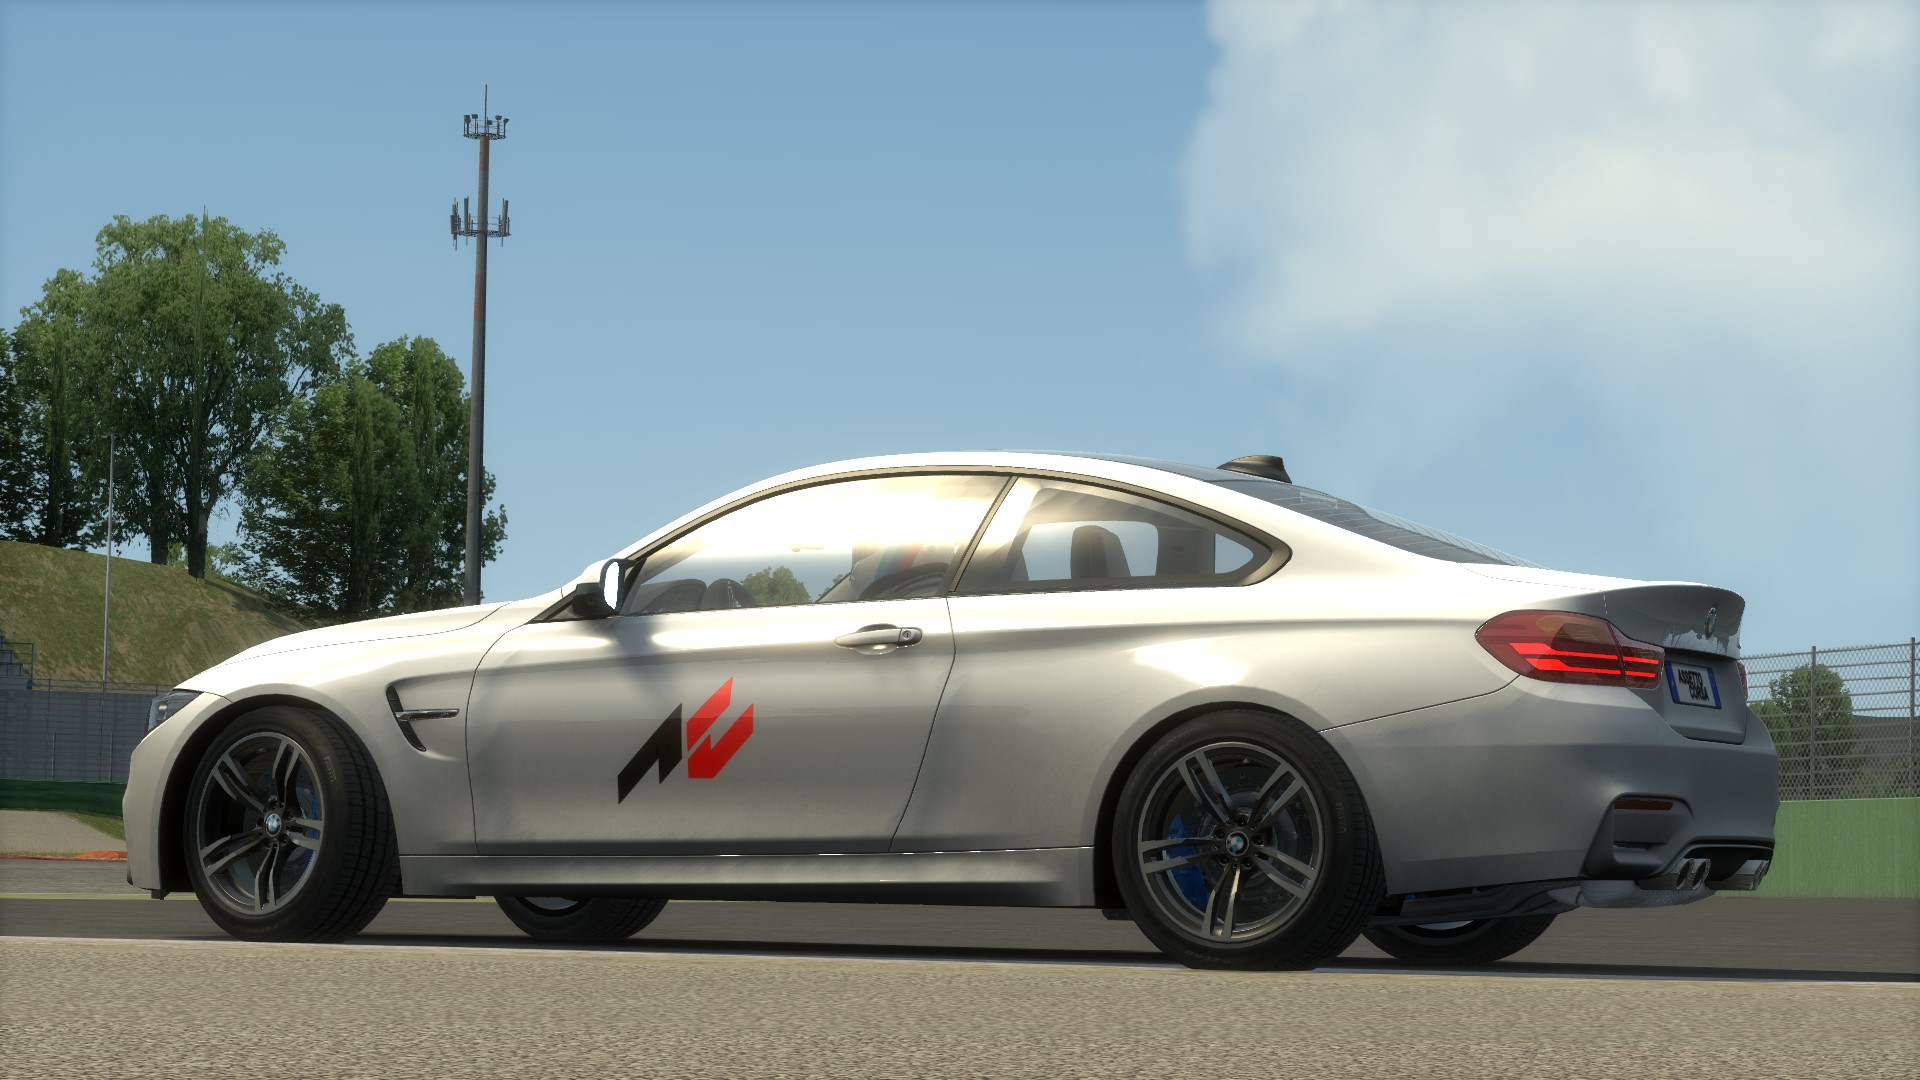 Screenshot_ks_bmw_m4_vallelunga_10-11-115-21-58-27.jpg